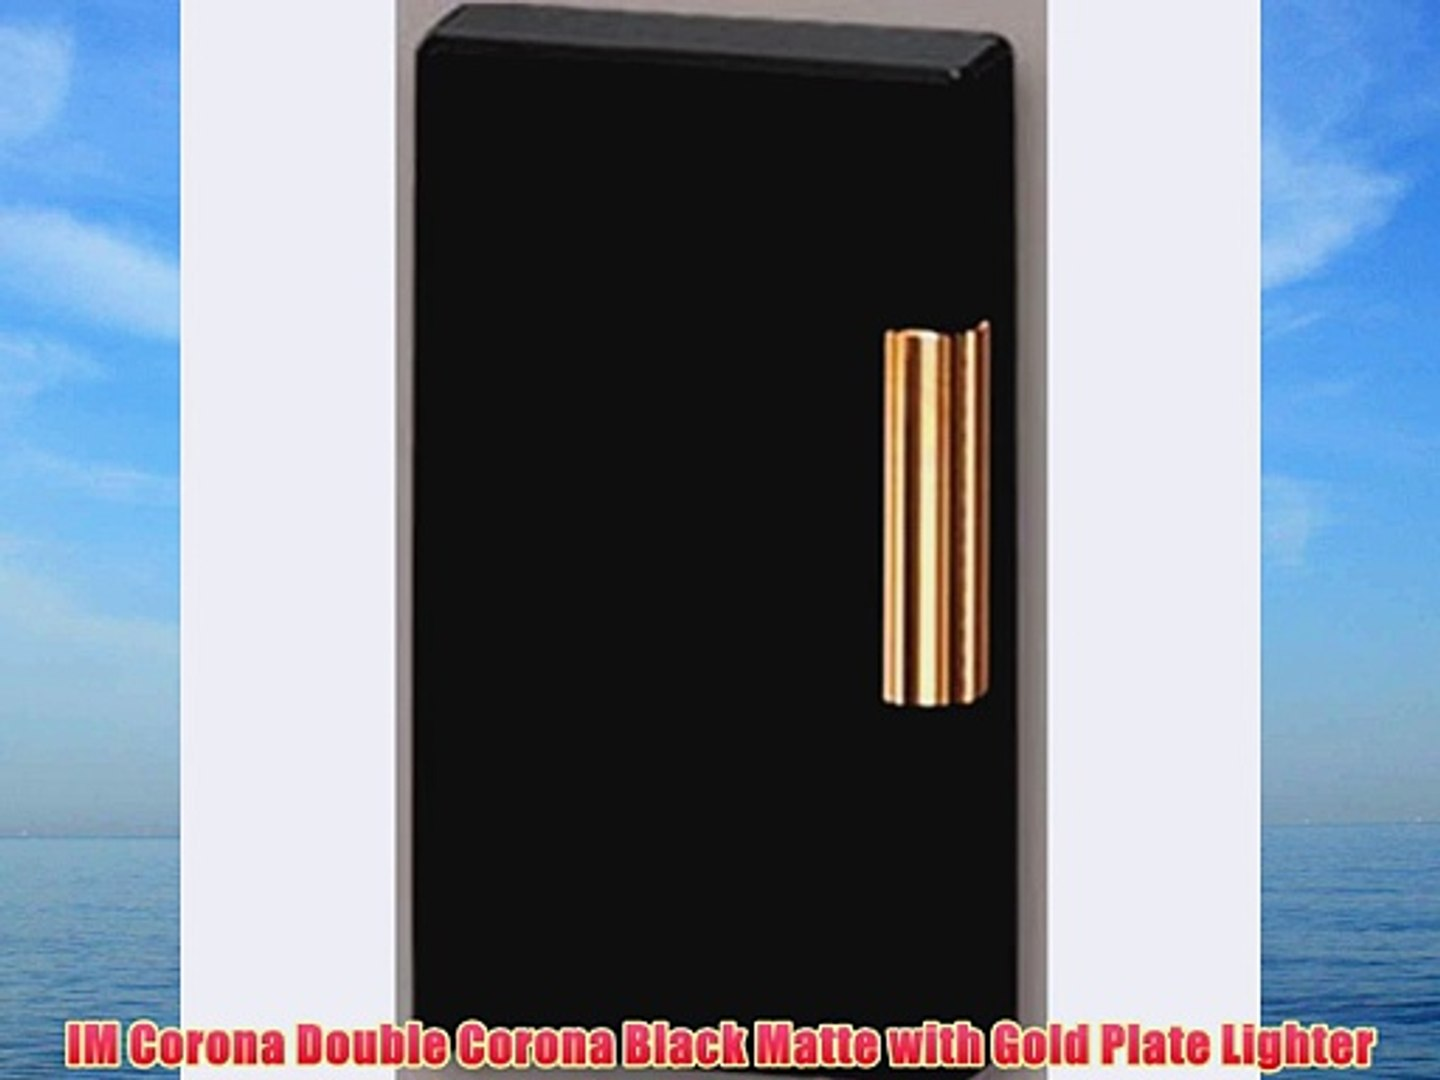 IM Corona Double Corona Black Matte with Gold Plate Lighter